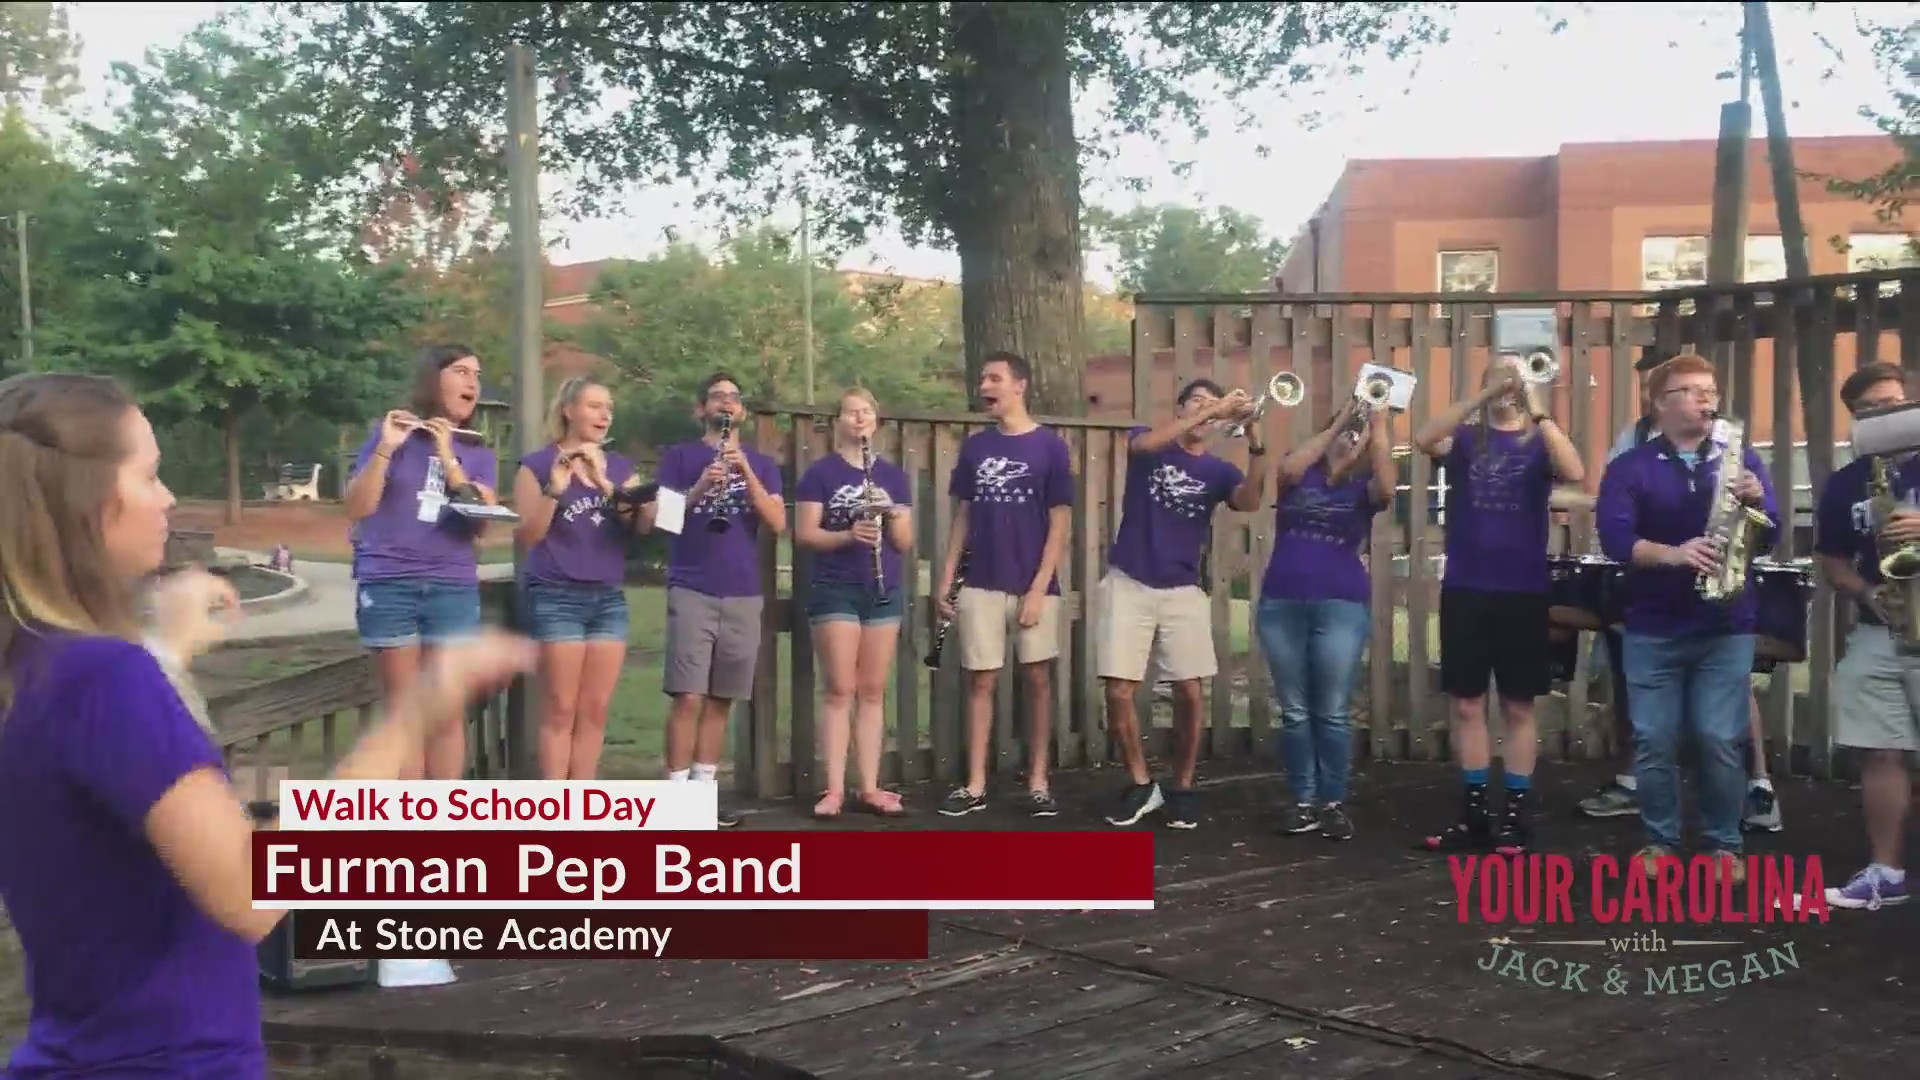 Good News - Furman Pep Band at Stone Academy